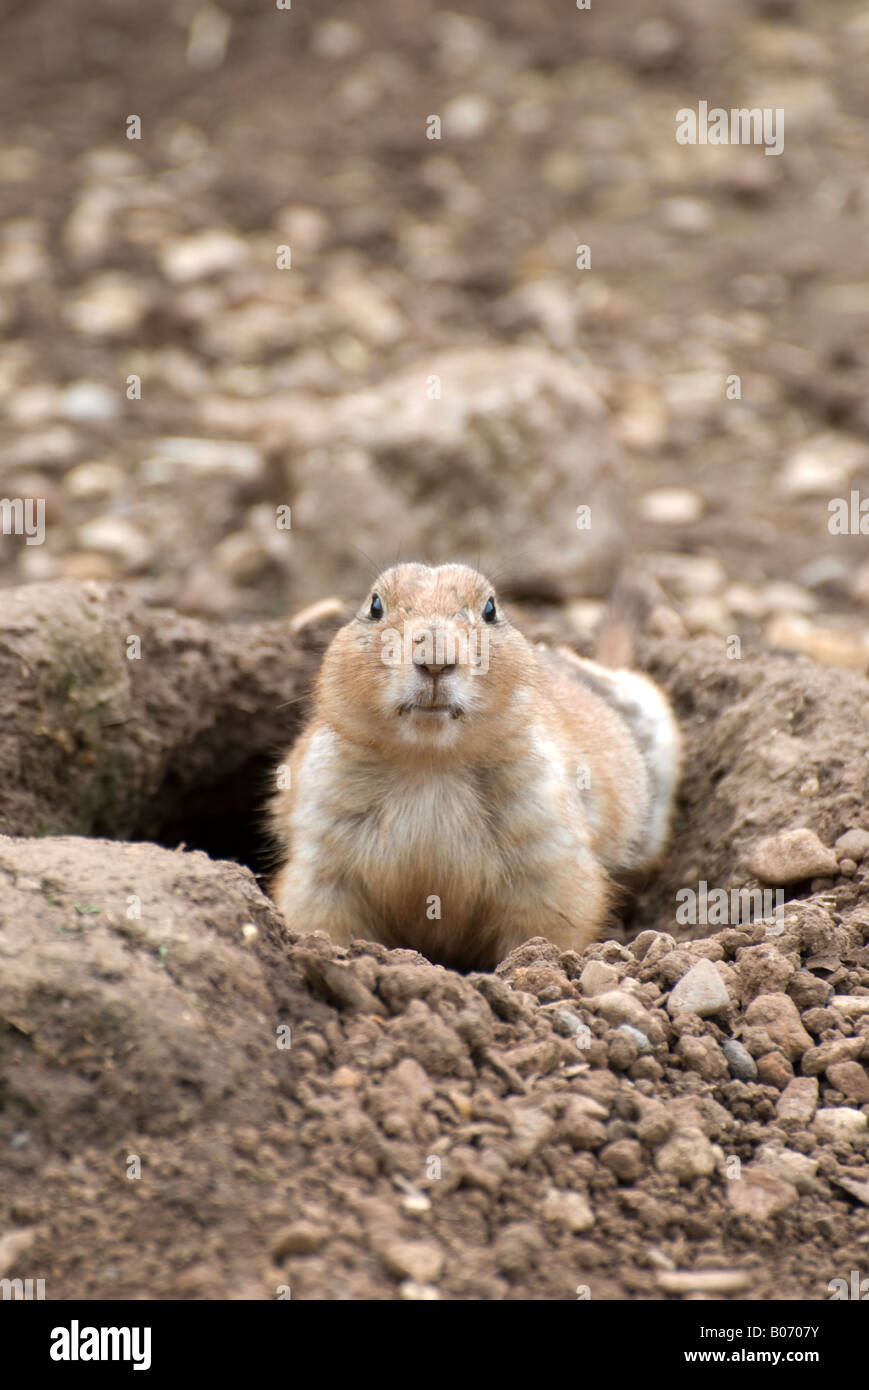 prairie dogemerging from burrow shot 02 and looking at camera number 2677 - Stock Image